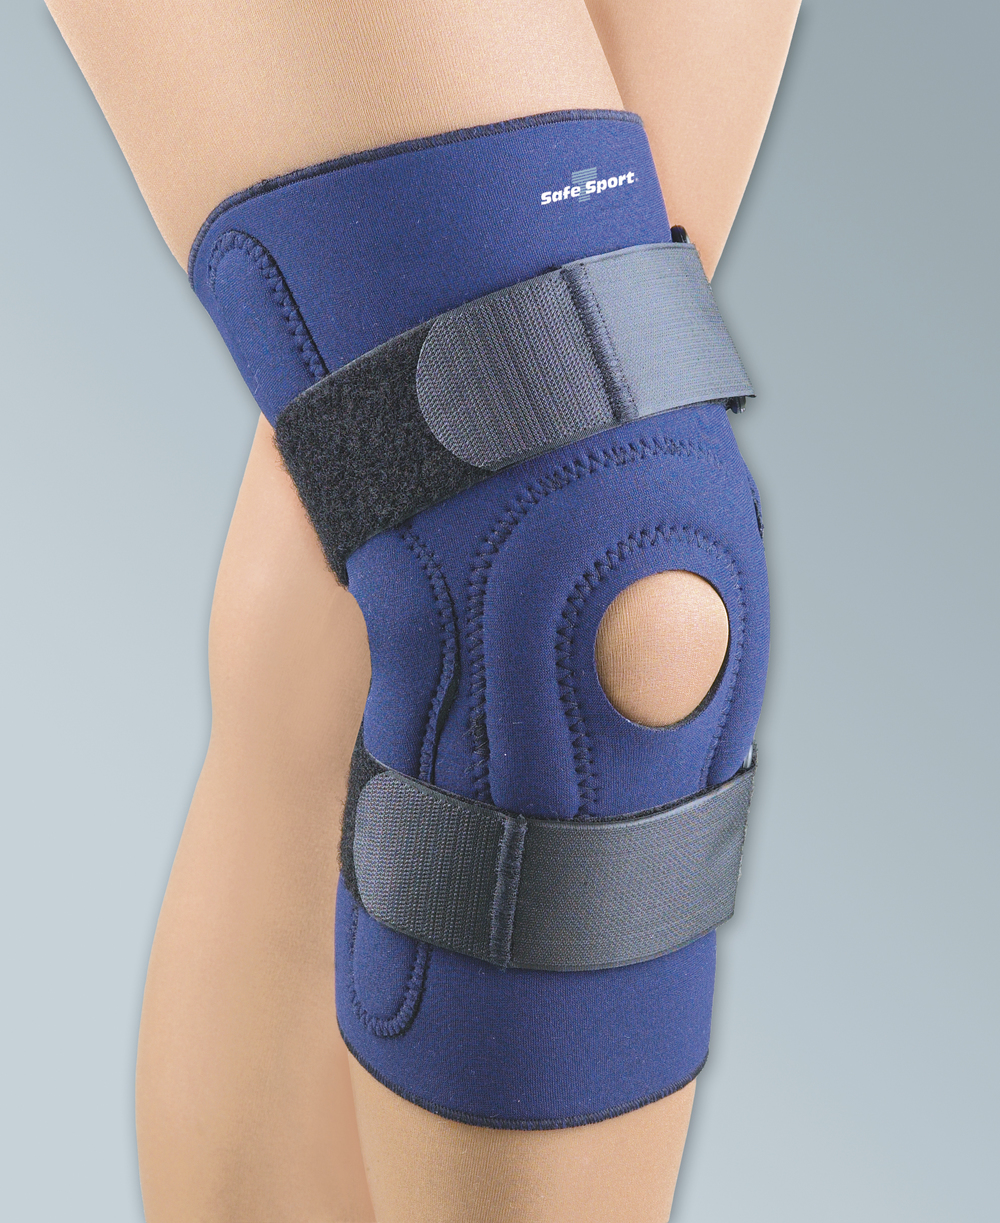 37-104_Neo_Hinge_Knee_Brace_High.jpg